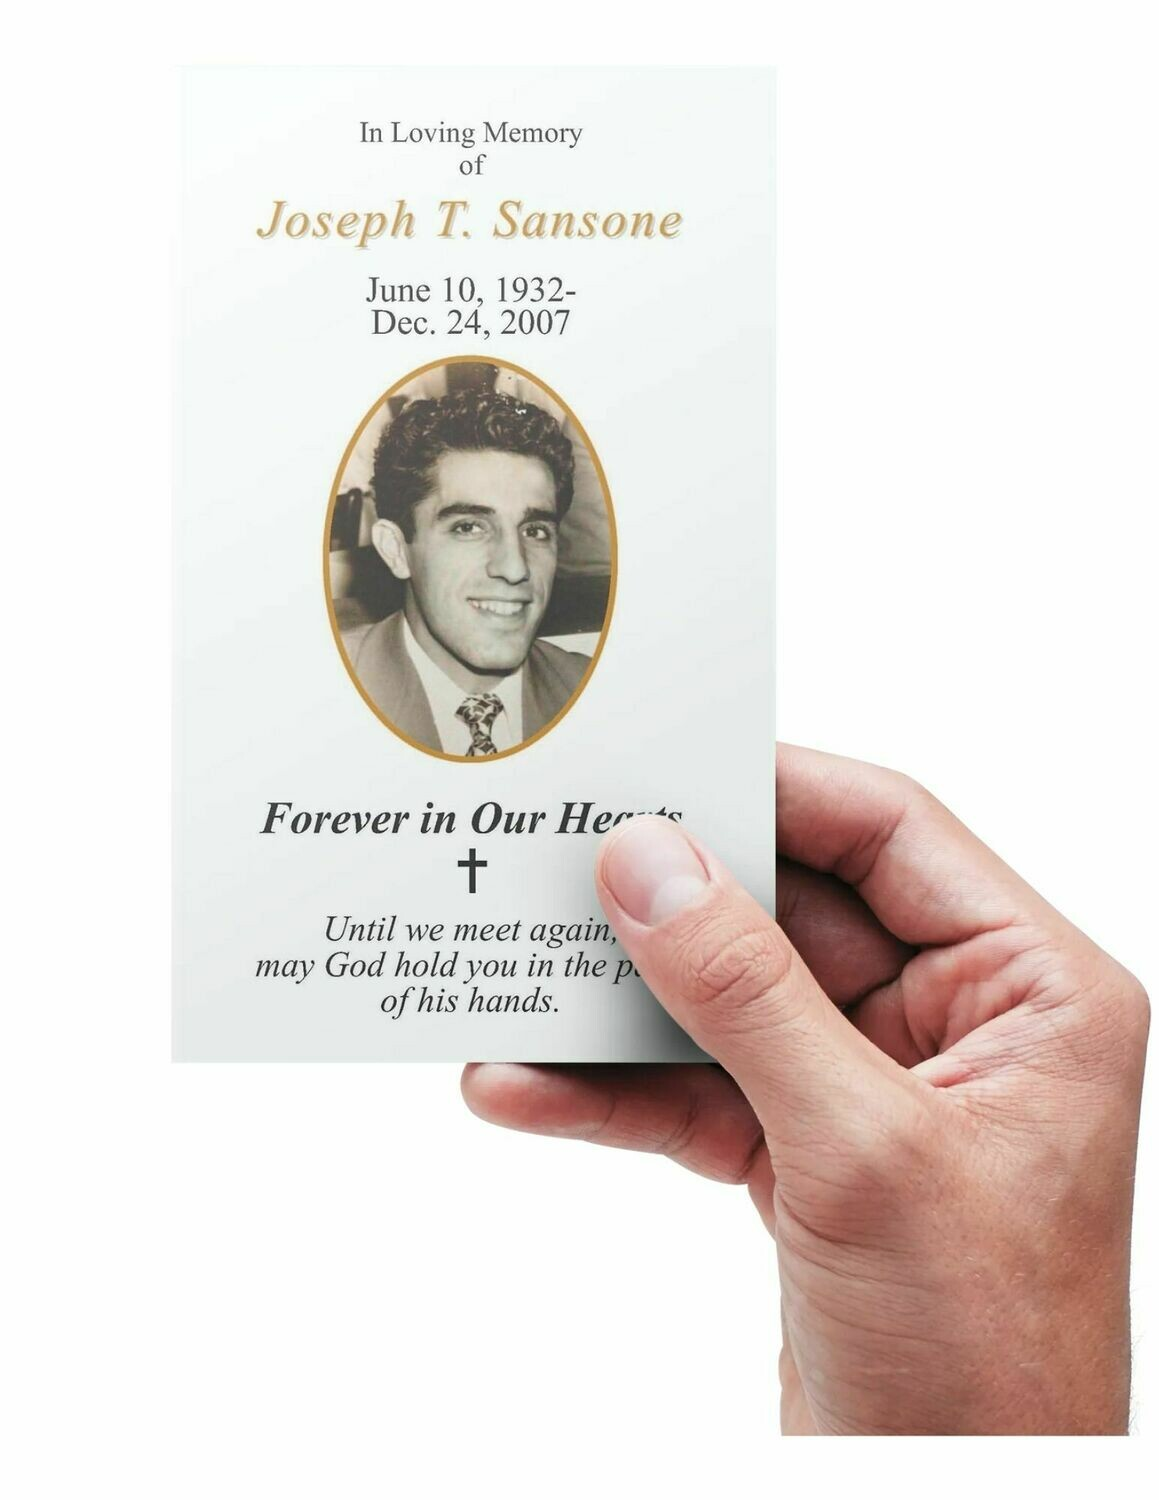 Funeral Memorial Prayer Cards - Custom Personalized Photo and Prayer - Forever in Our Hearts